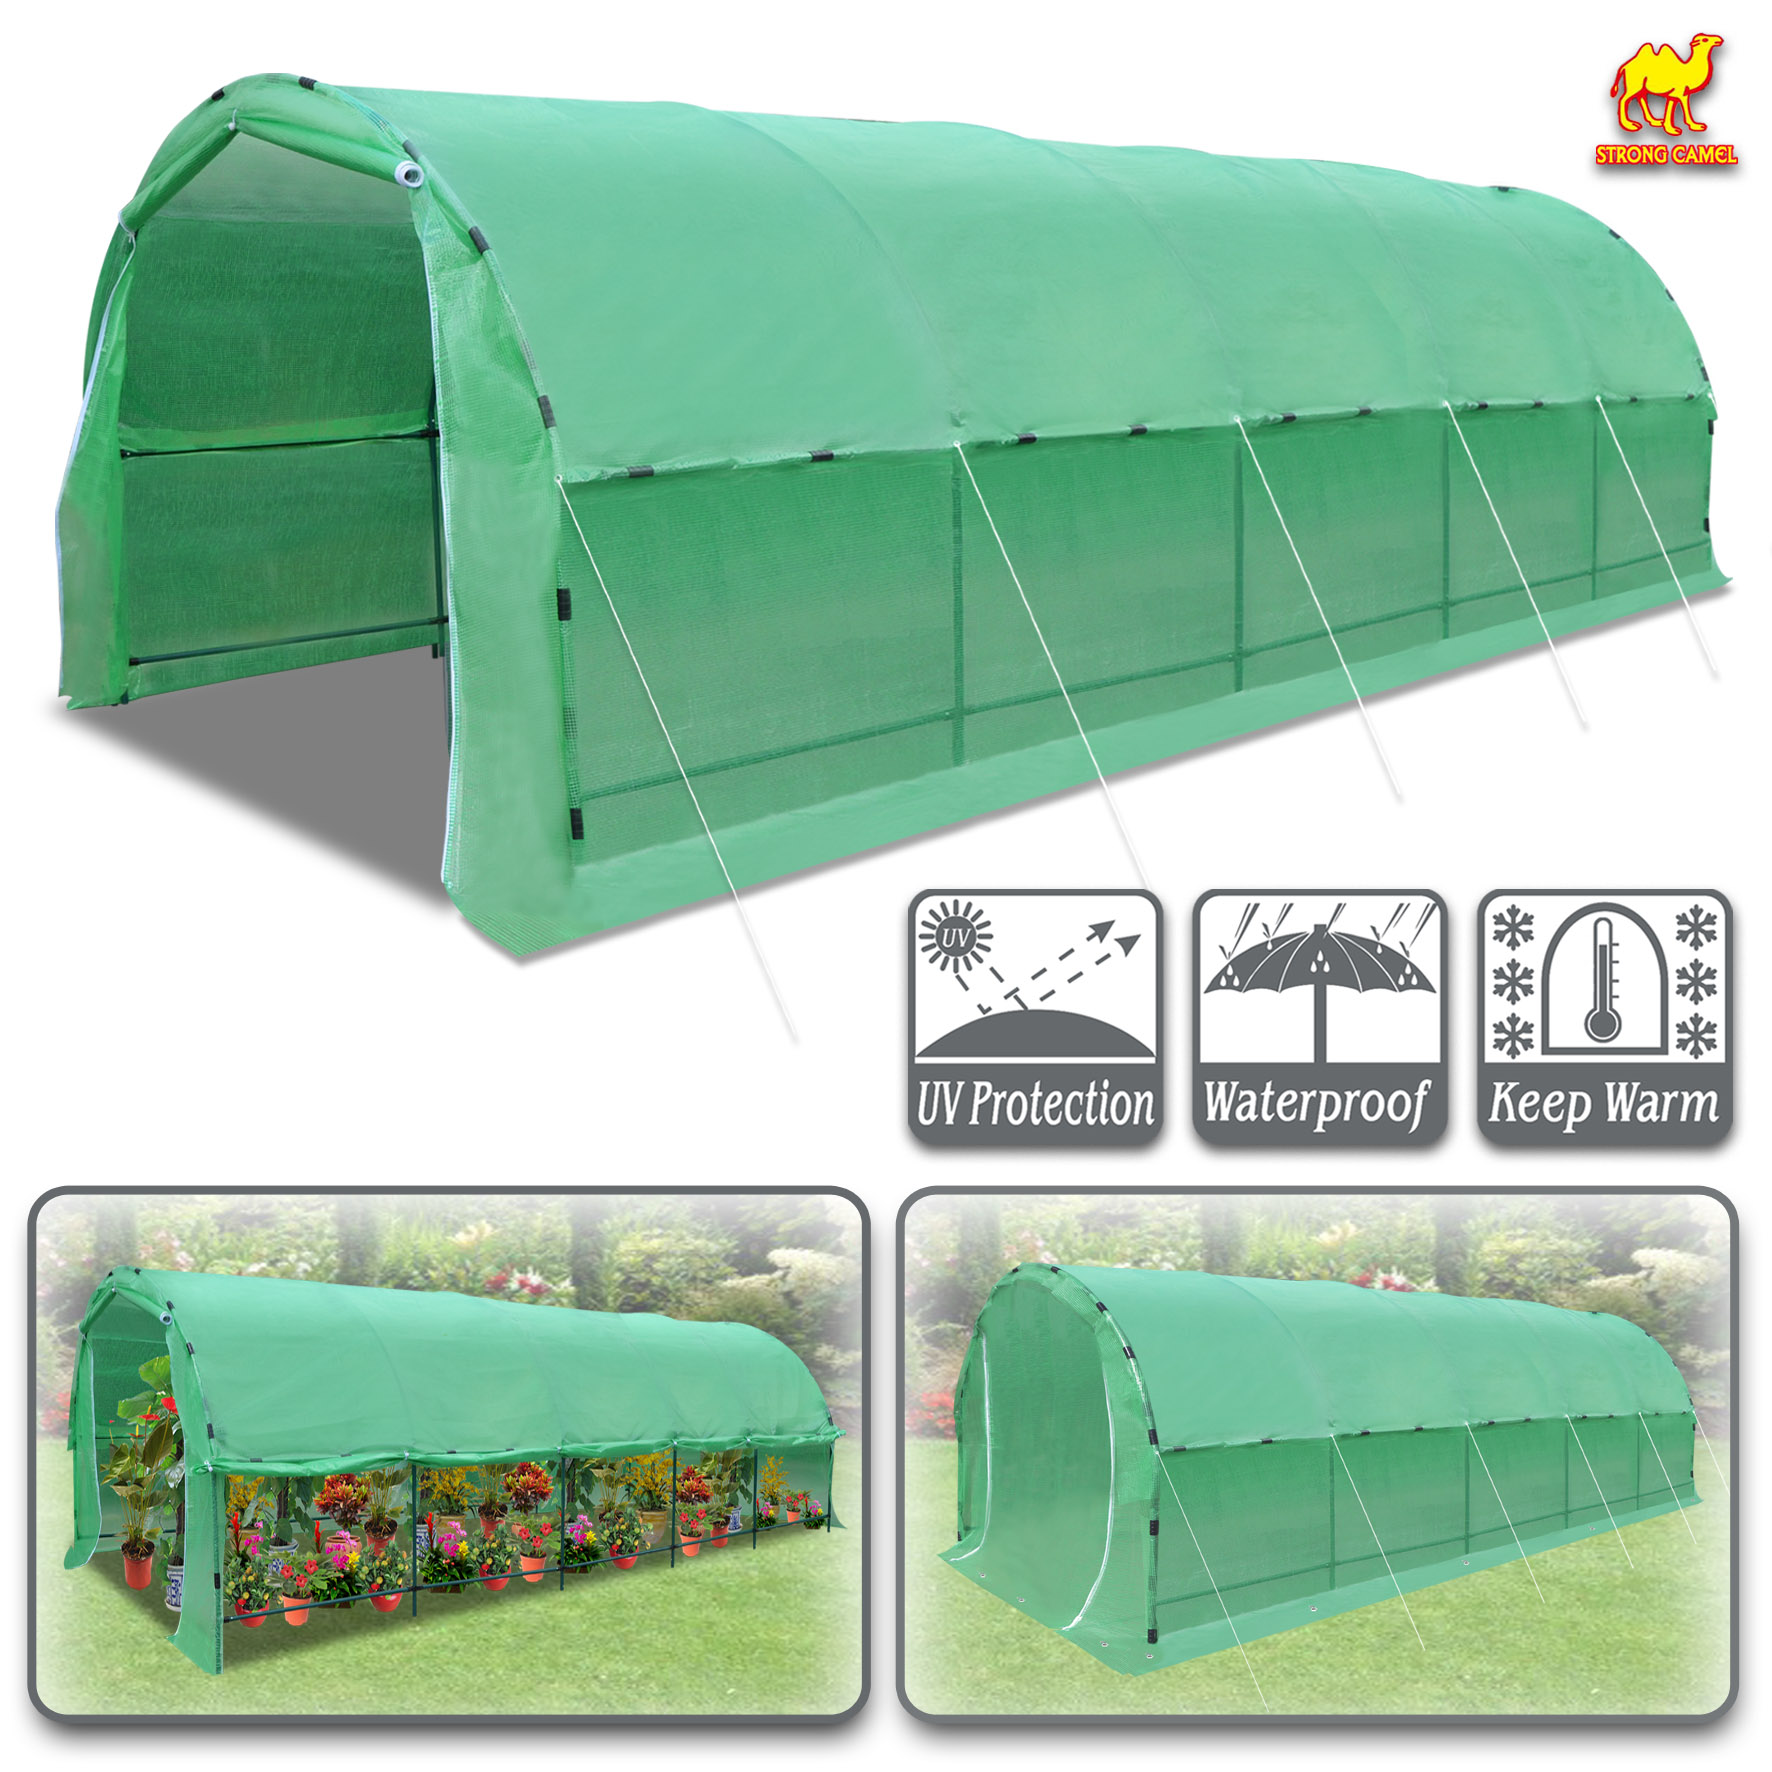 Strong Camel Greenhouse 24.6' X10' X 7' Portable Walk In Outdoor Plant Gardening Hot Green House with ABS Snap Clamp